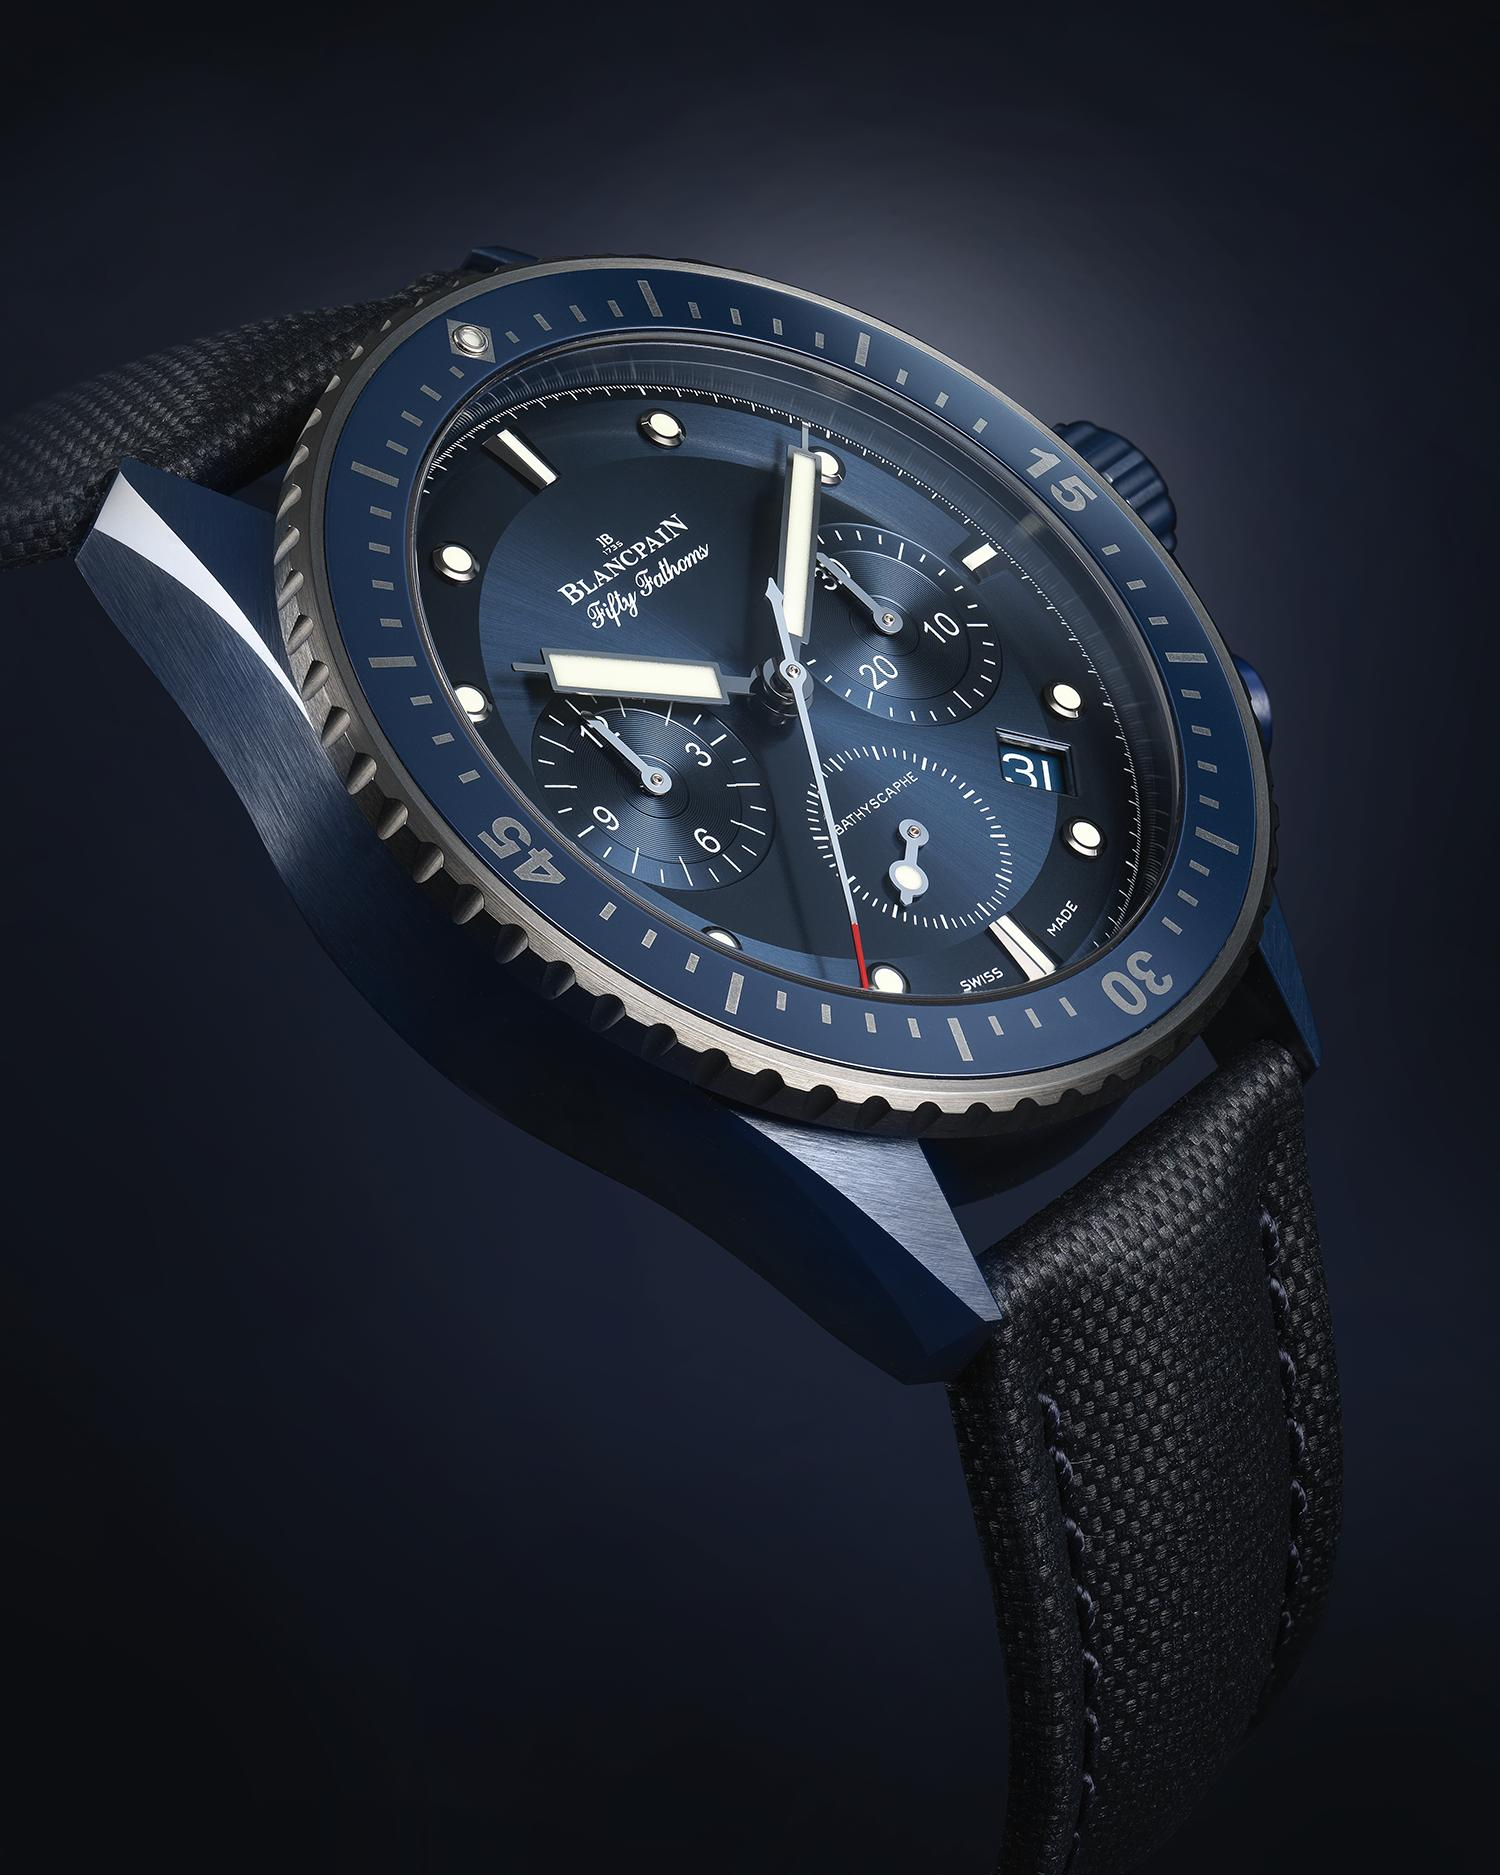 Blancpain Fifty Fathoms Bathyscaphe Bucherer Blue Edition oblique